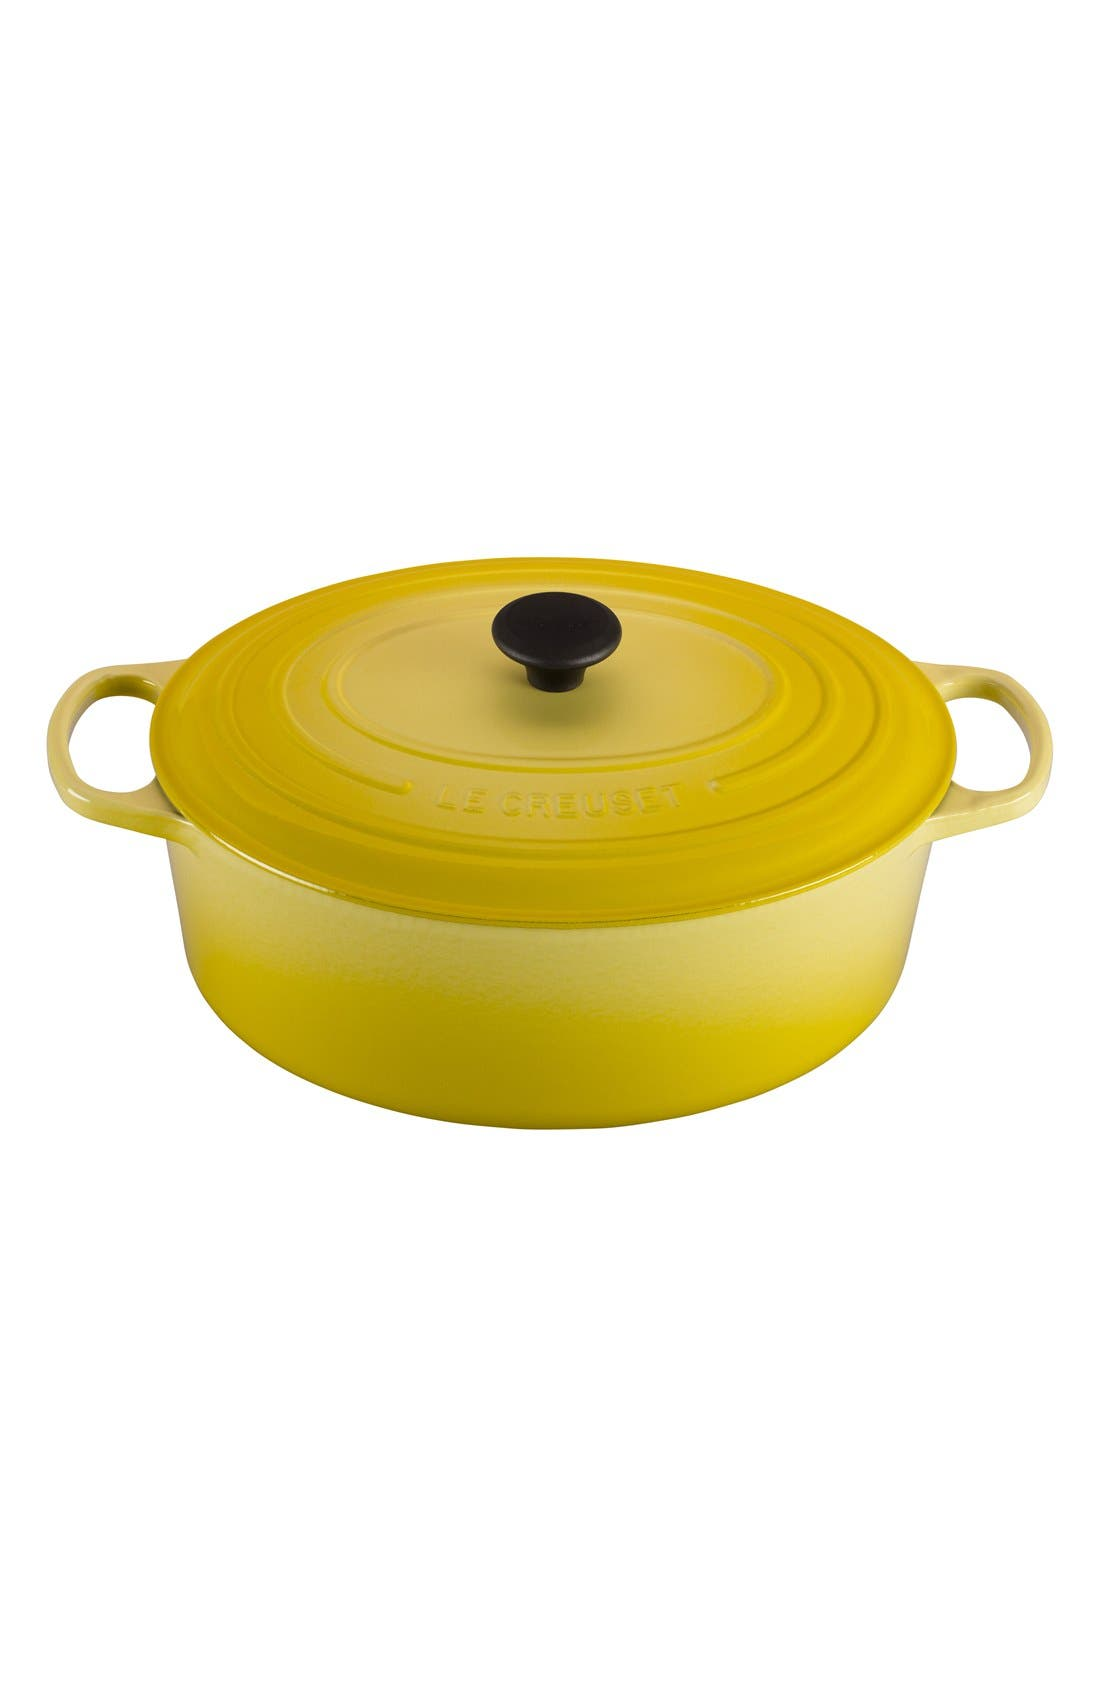 Alternate Image 1 Selected - Le Creuset Signature 9 1/2 Quart Oval Enamel Cast Iron French/Dutch Oven